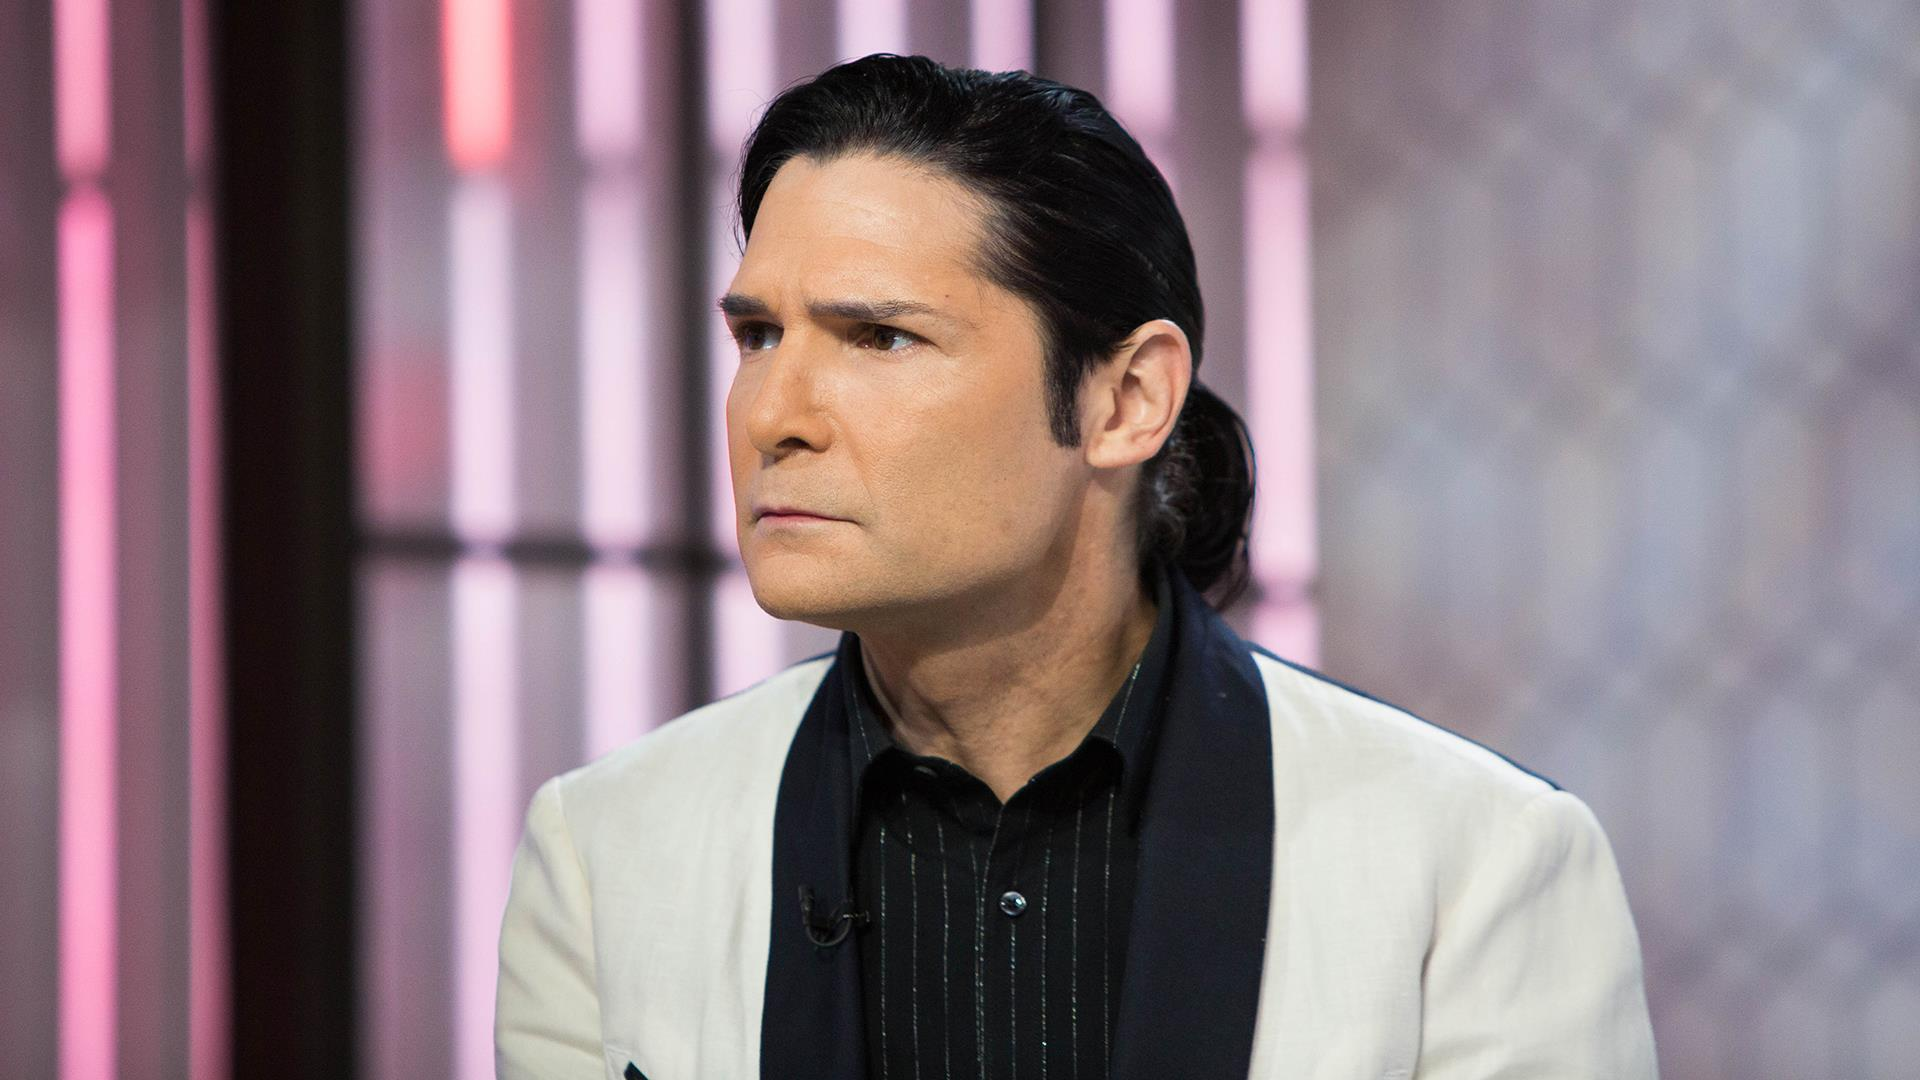 Corey Feldman Says He Was Stabbed For Speaking Out Against Pedophiles